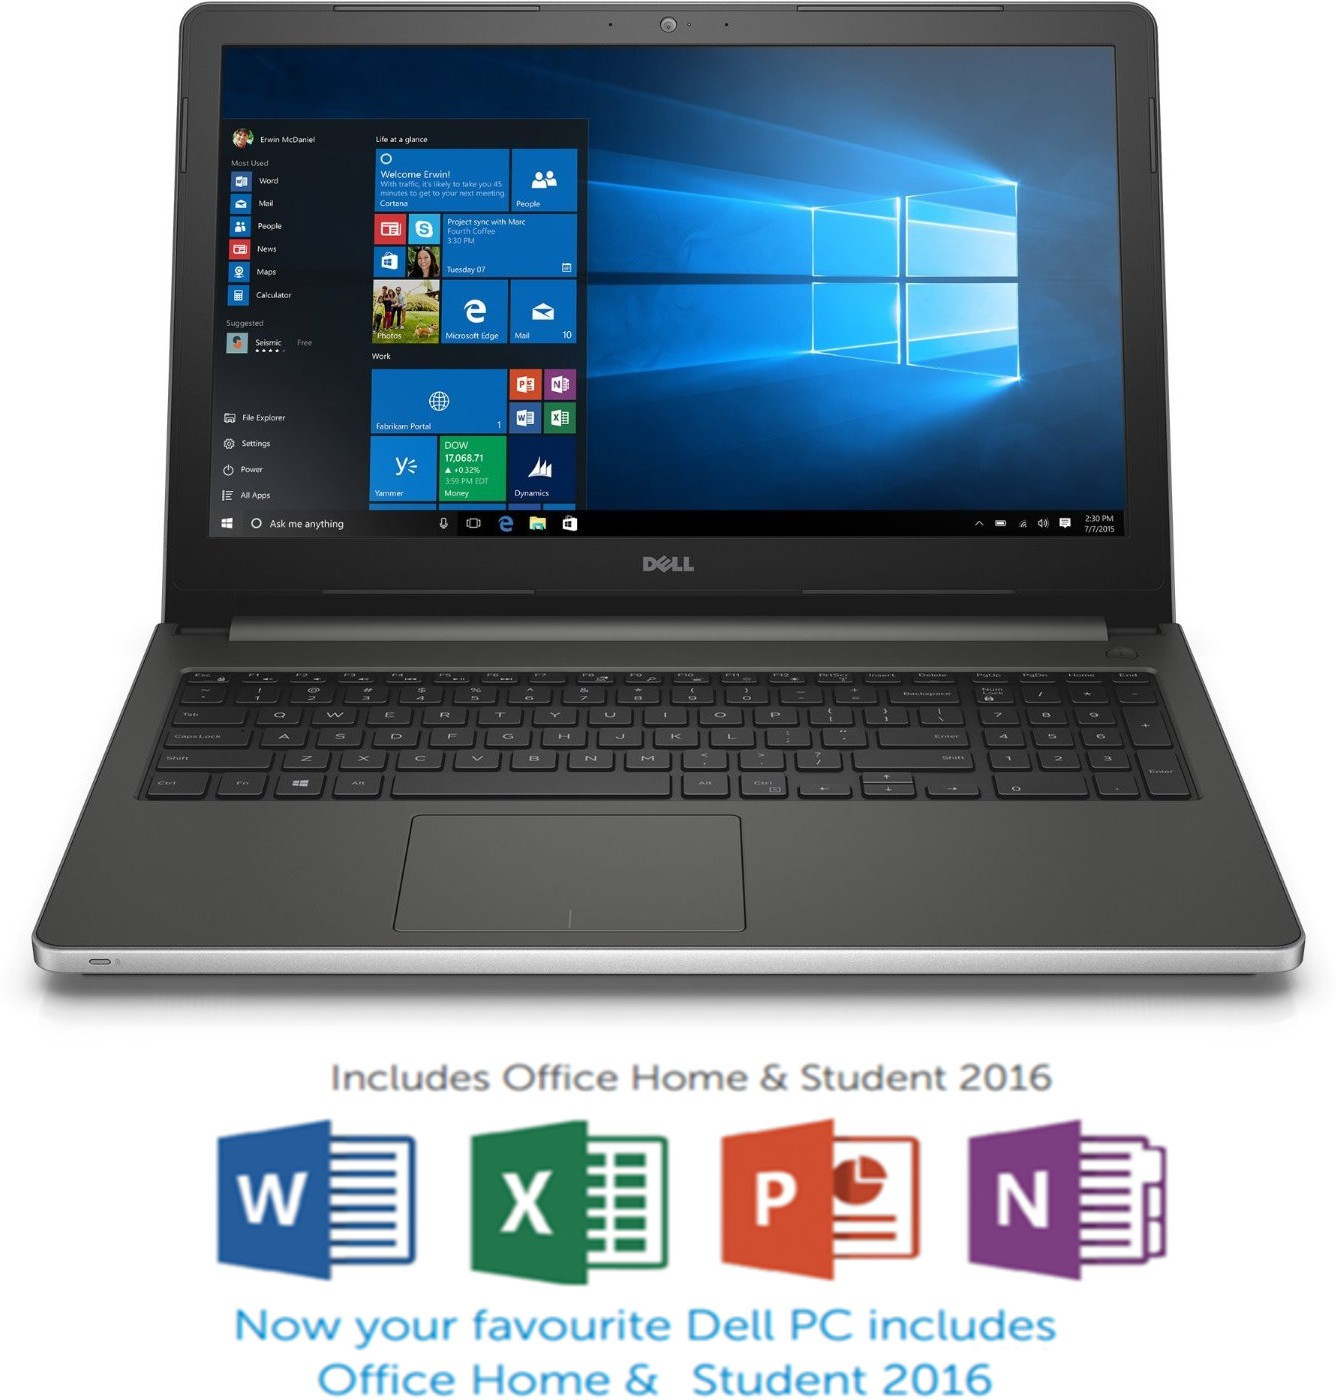 Deals - Jodhpur - Flat ₹ 10000 off <br> Dell Premium Laptops<br> Category - computers<br> Business - Flipkart.com